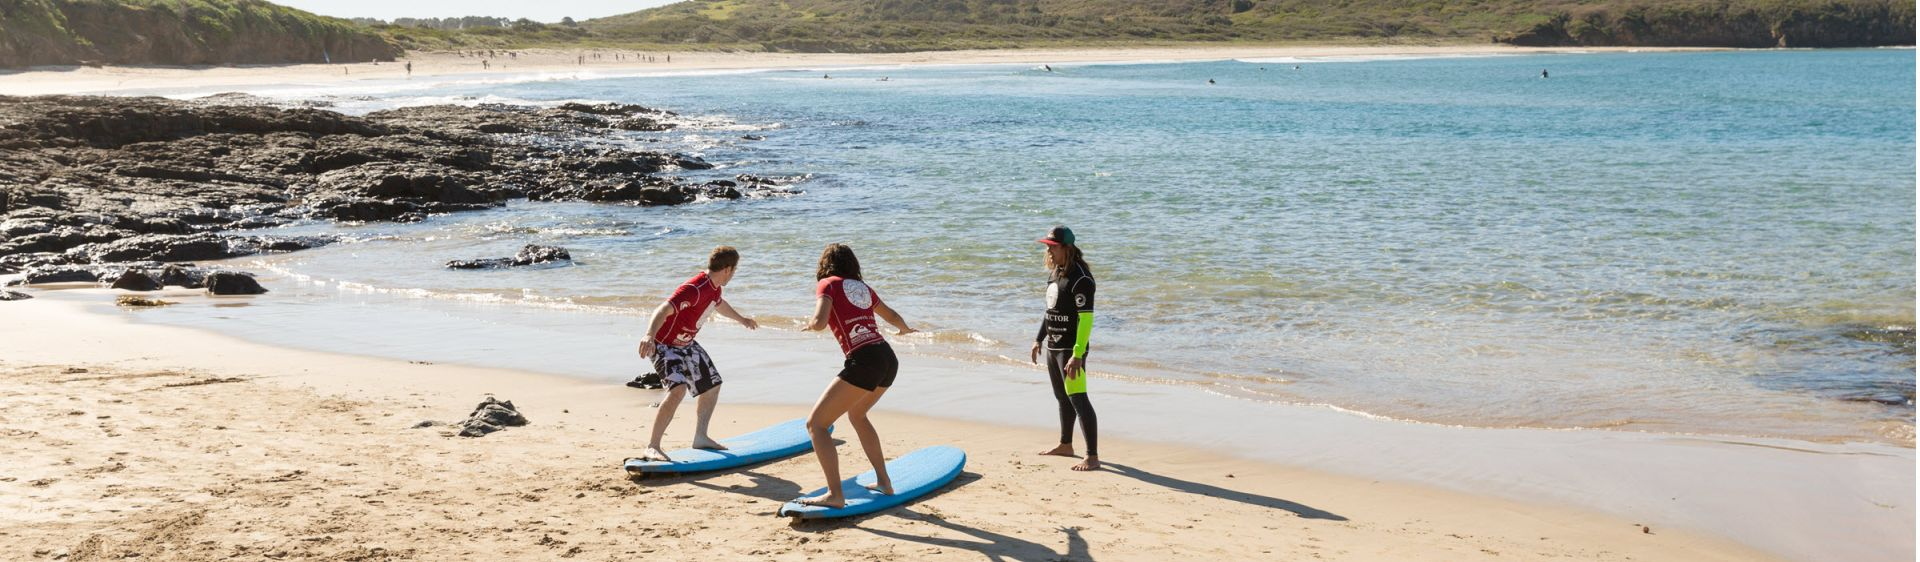 Surf lesson at The Farm, Killalea State Park, Shellharbour, South Coast NSW